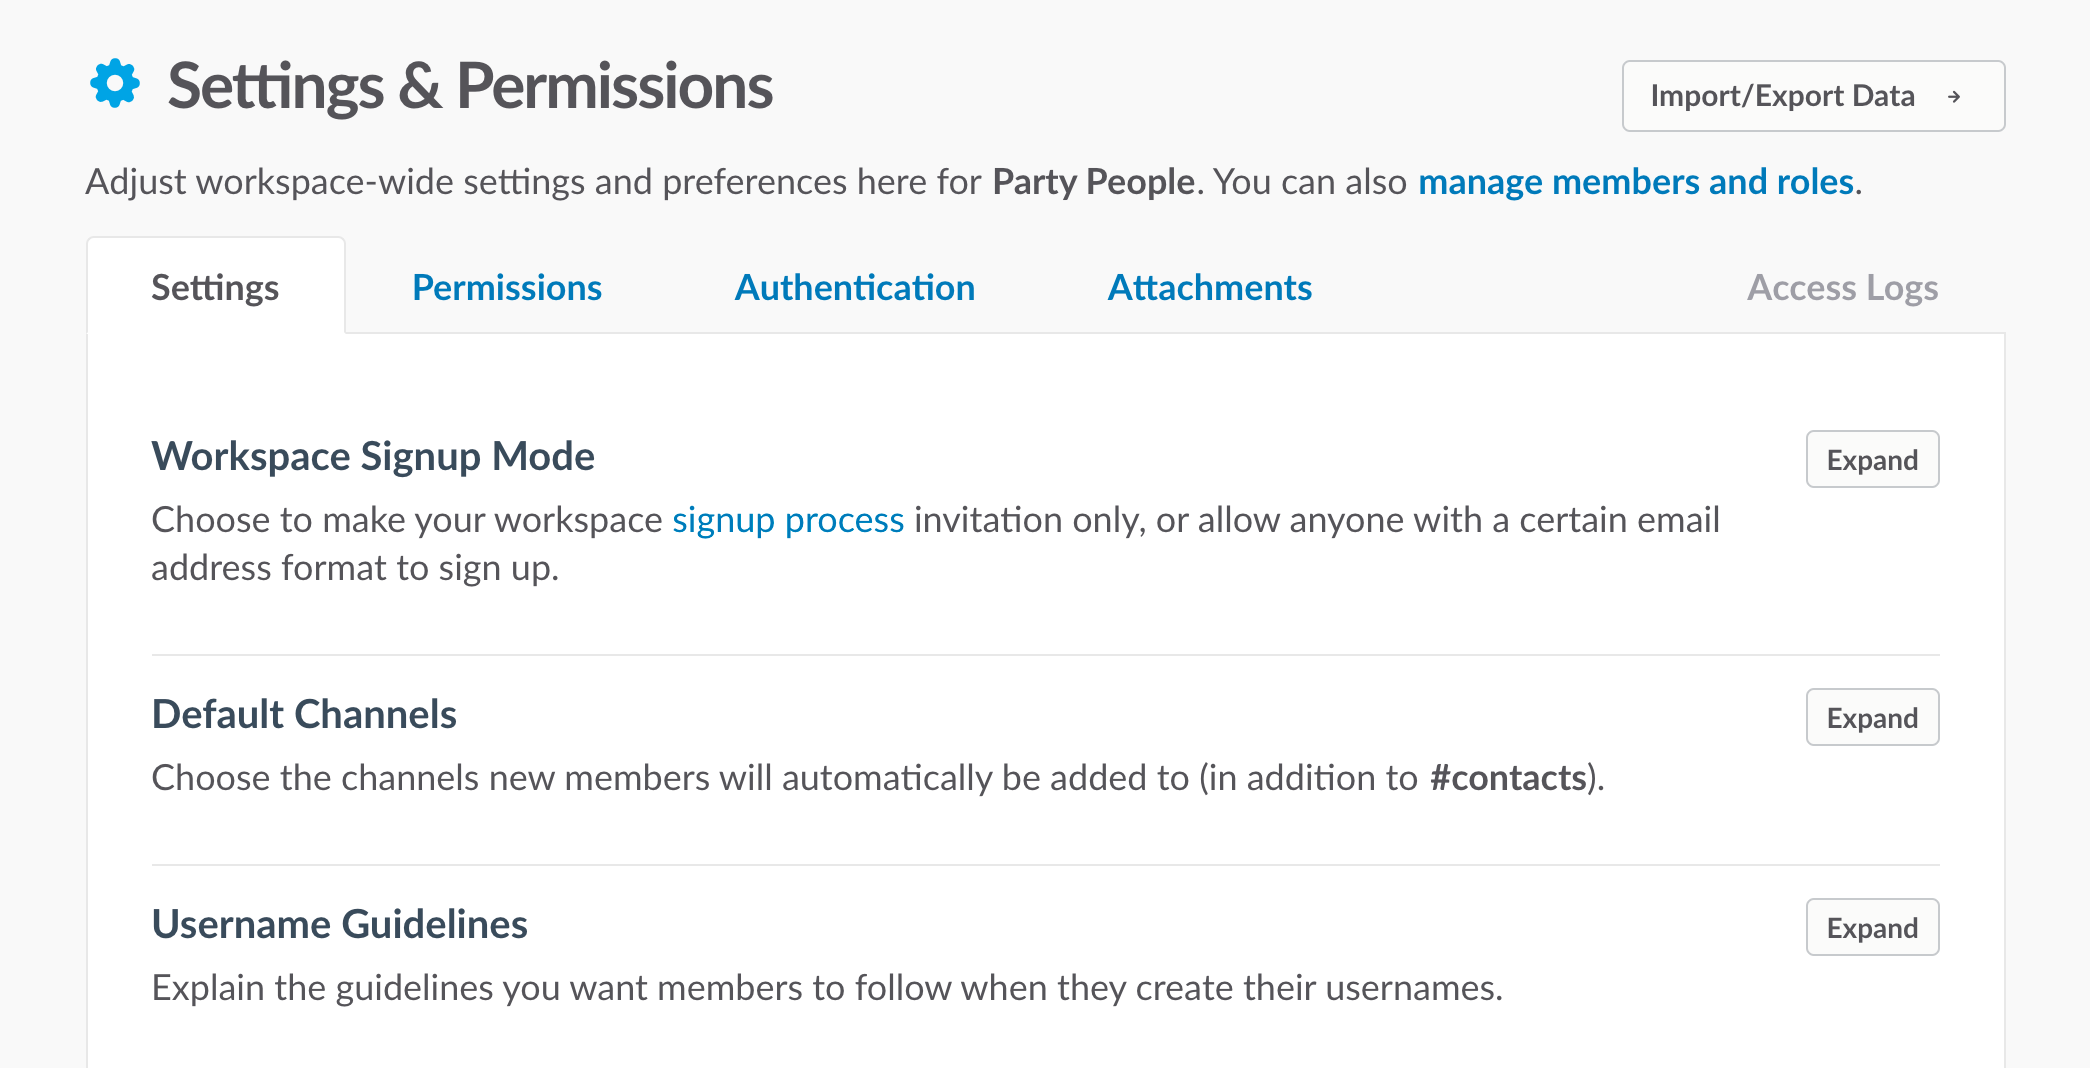 Manage workspace settings and permissions